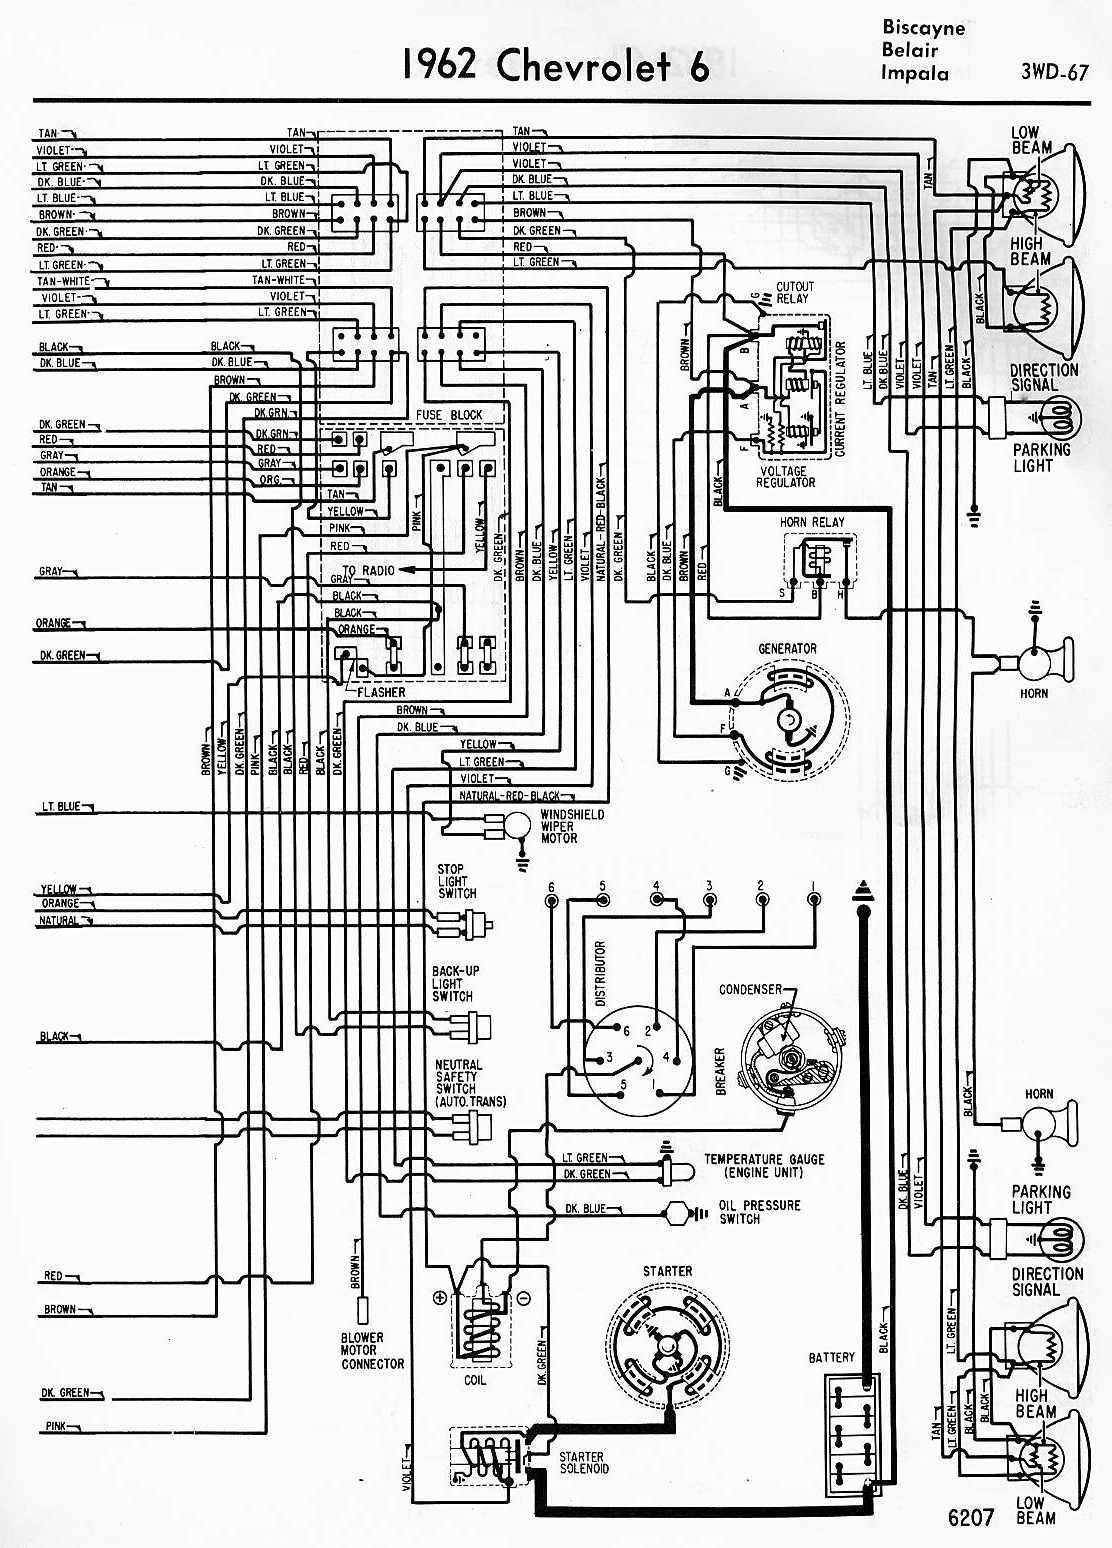 medium resolution of 1962 chevy c10 wiring diagram wiring diagram schematics 1960 chevy wiring diagram 1962 chevy wiring diagram